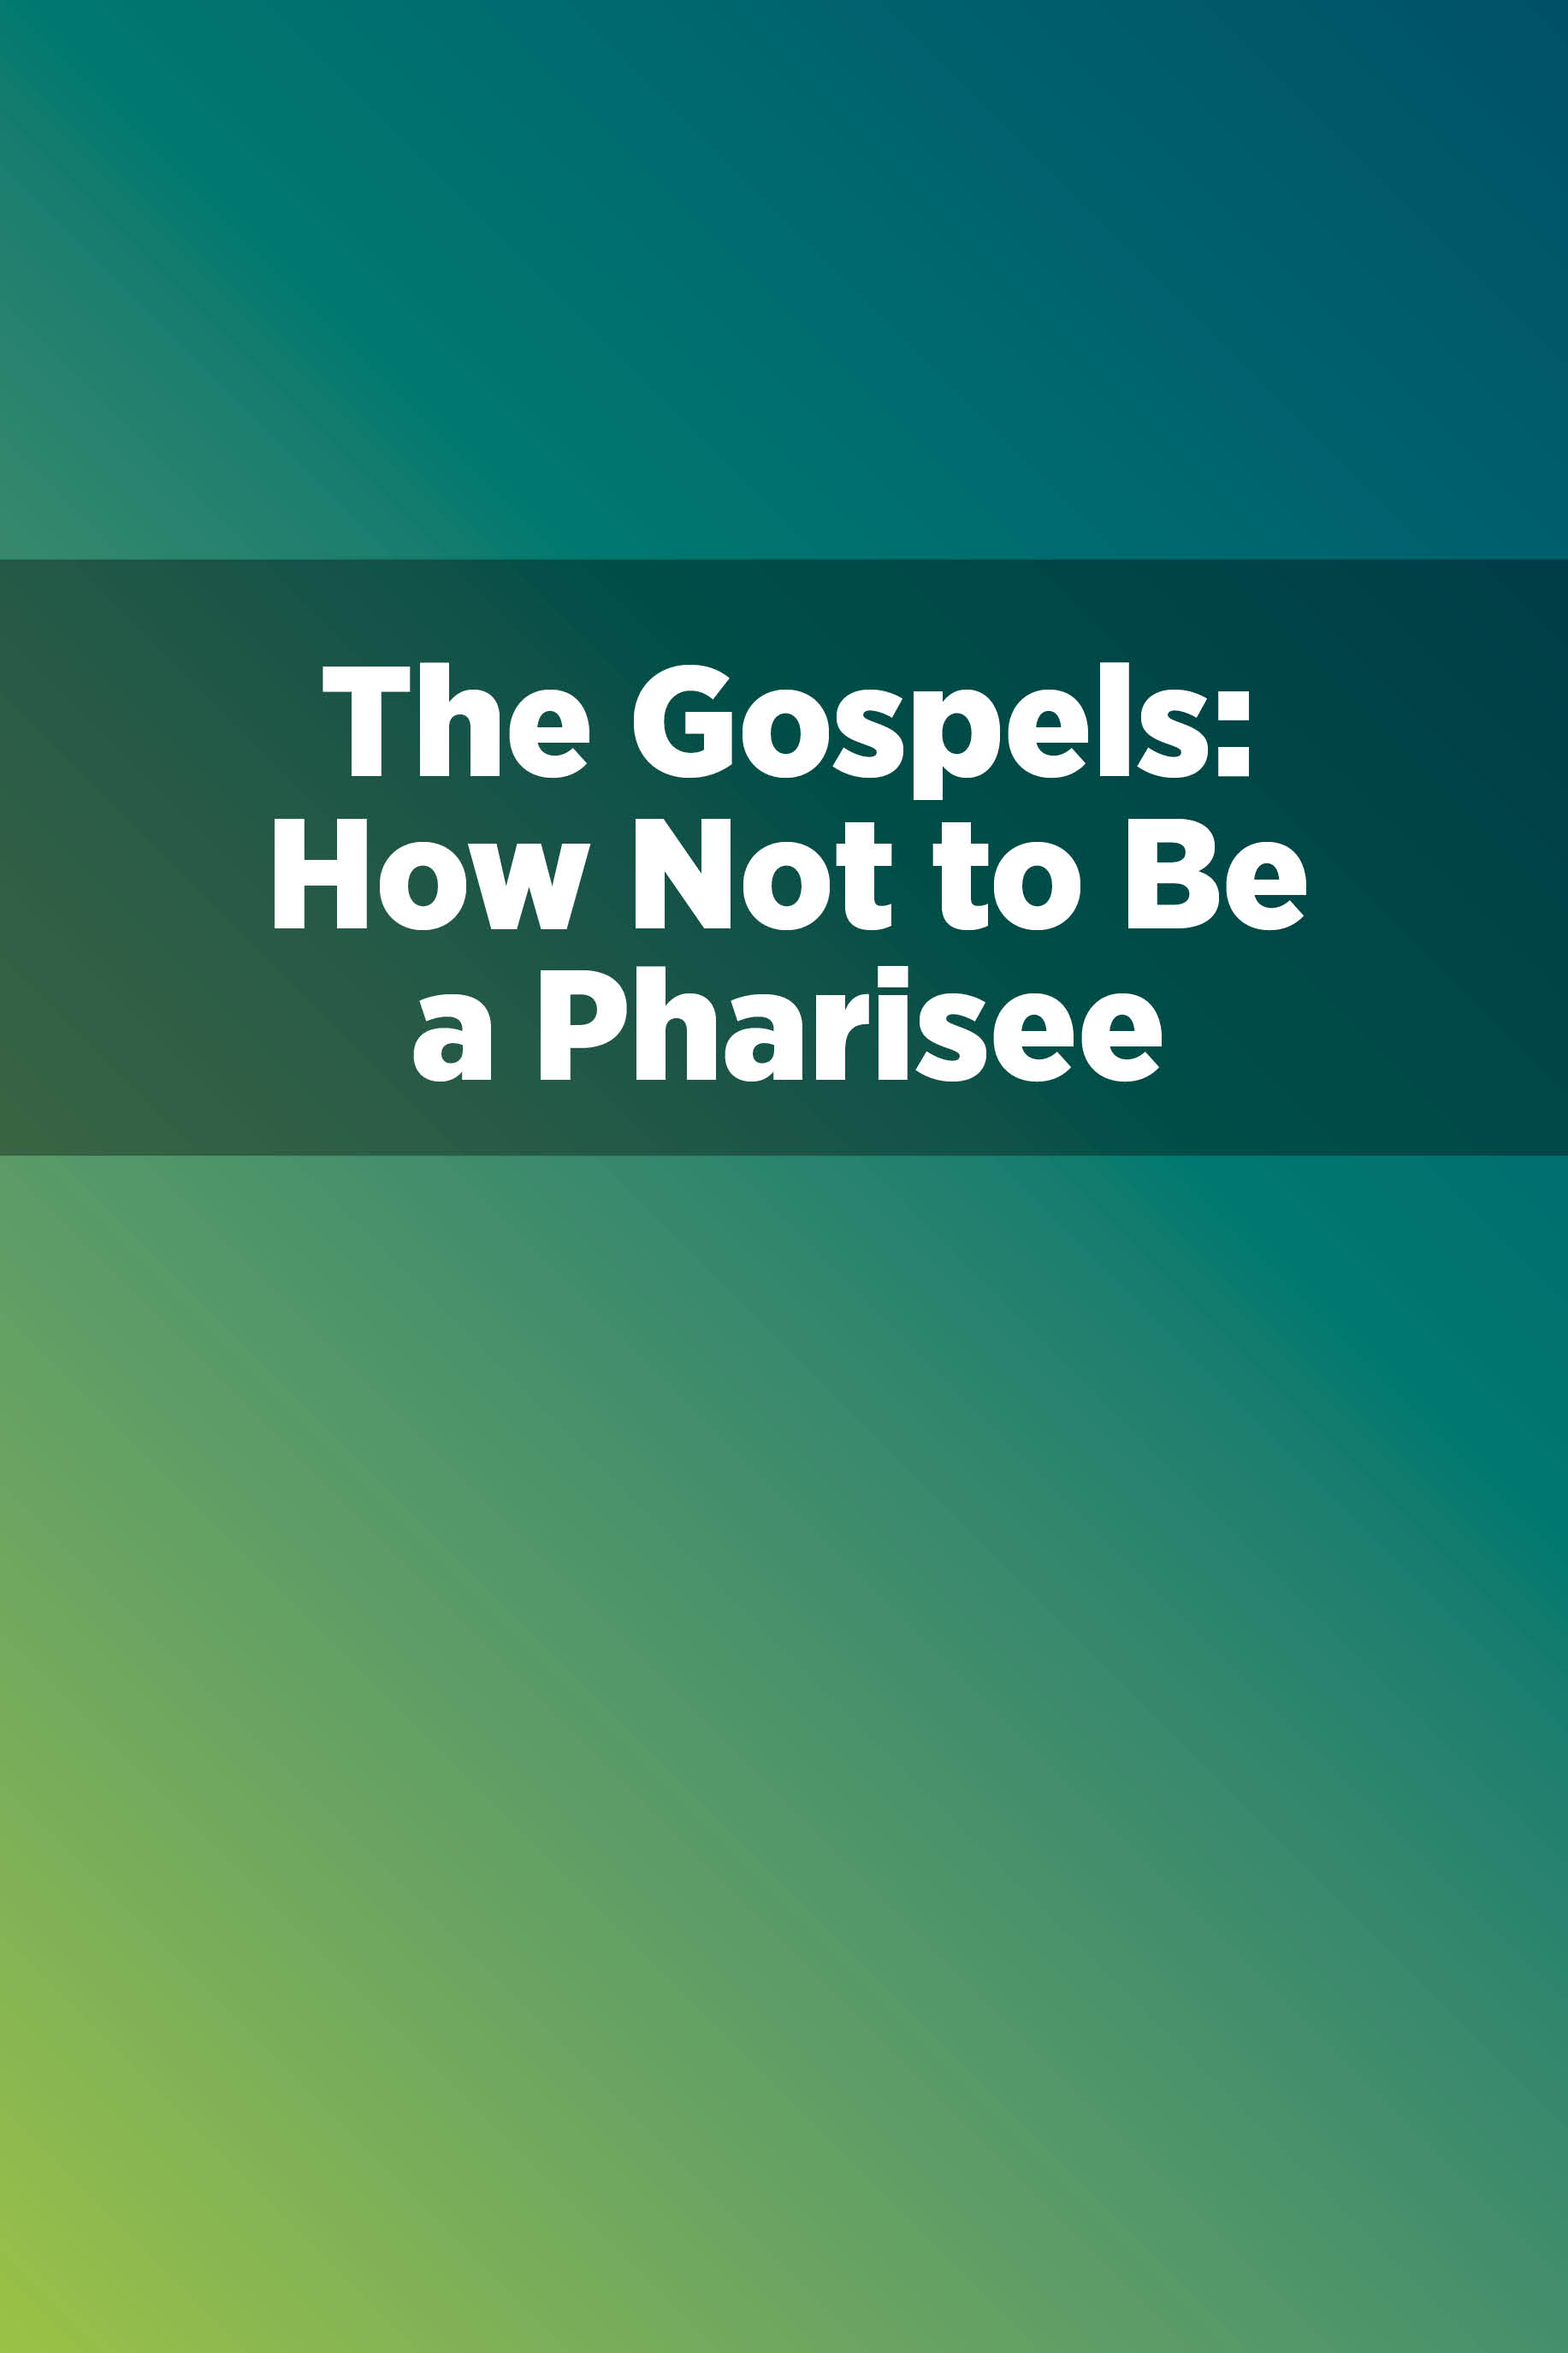 The Gospels: How Not to Be a Pharisee